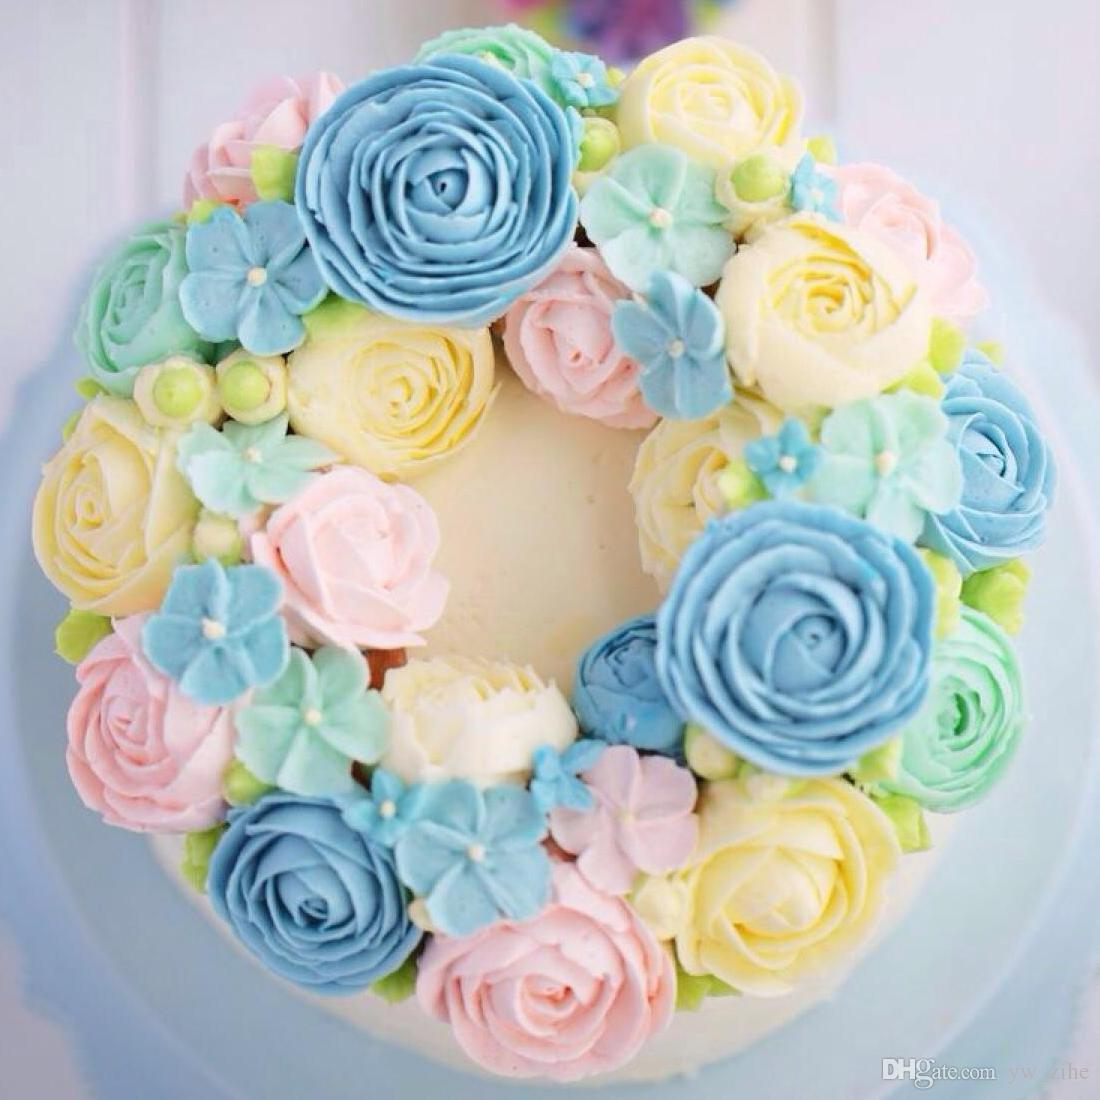 3D DOUBLE ROSE MOULD Silicone Cookie Fondant Cake Soap Chocolate Baking Flower